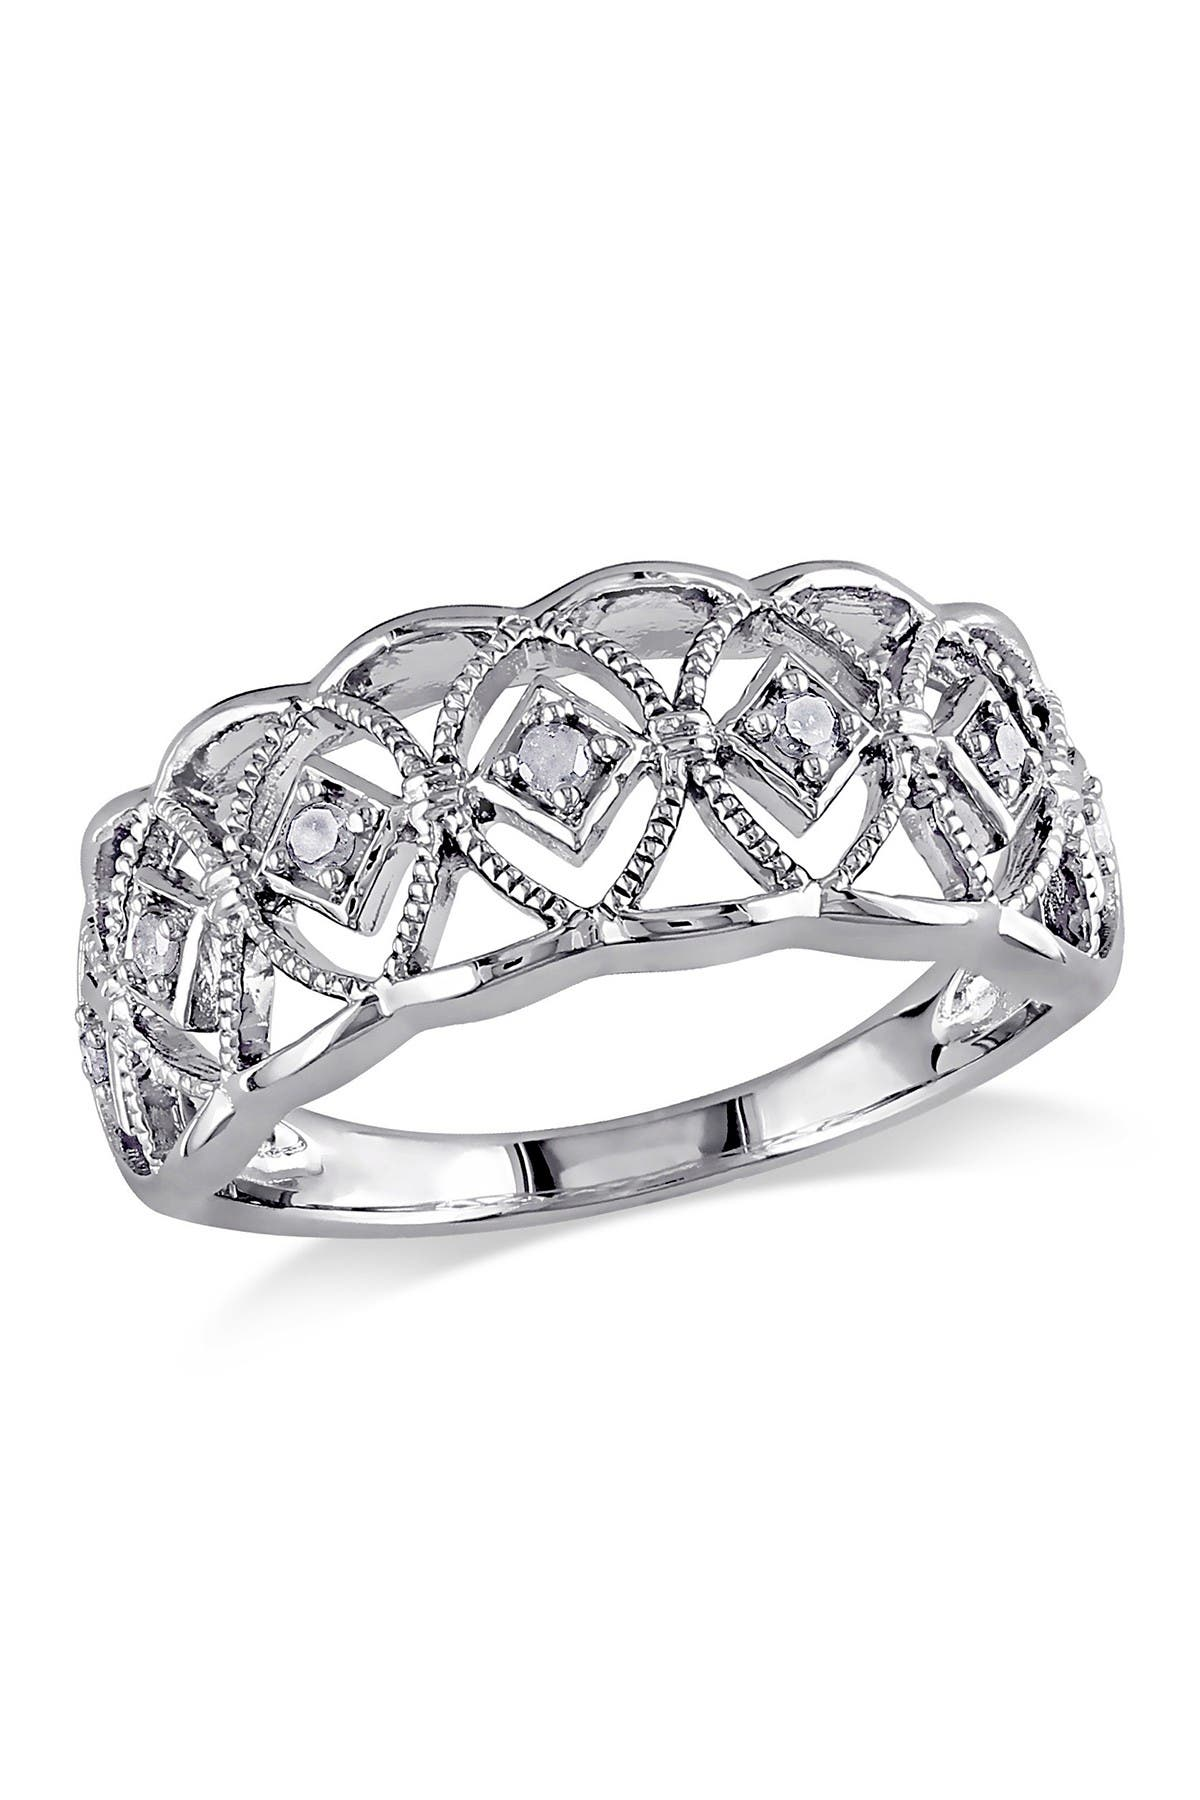 Image of Delmar Sterling Silver Diamond Cutout Ring - 0.10 ctw